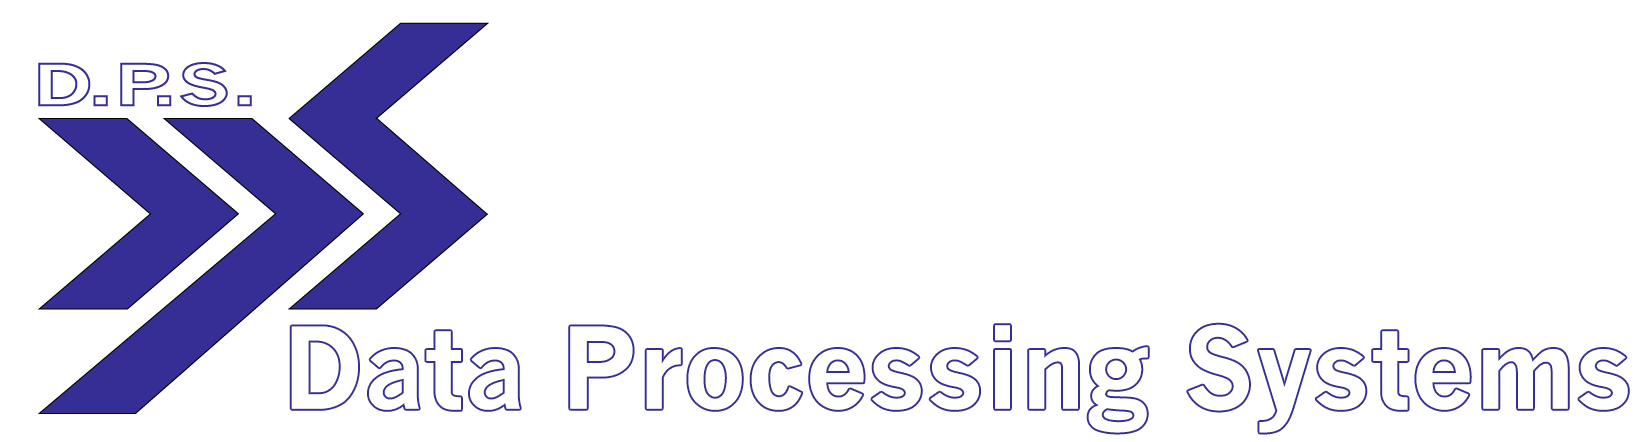 Logo DPS Data Processing Systems